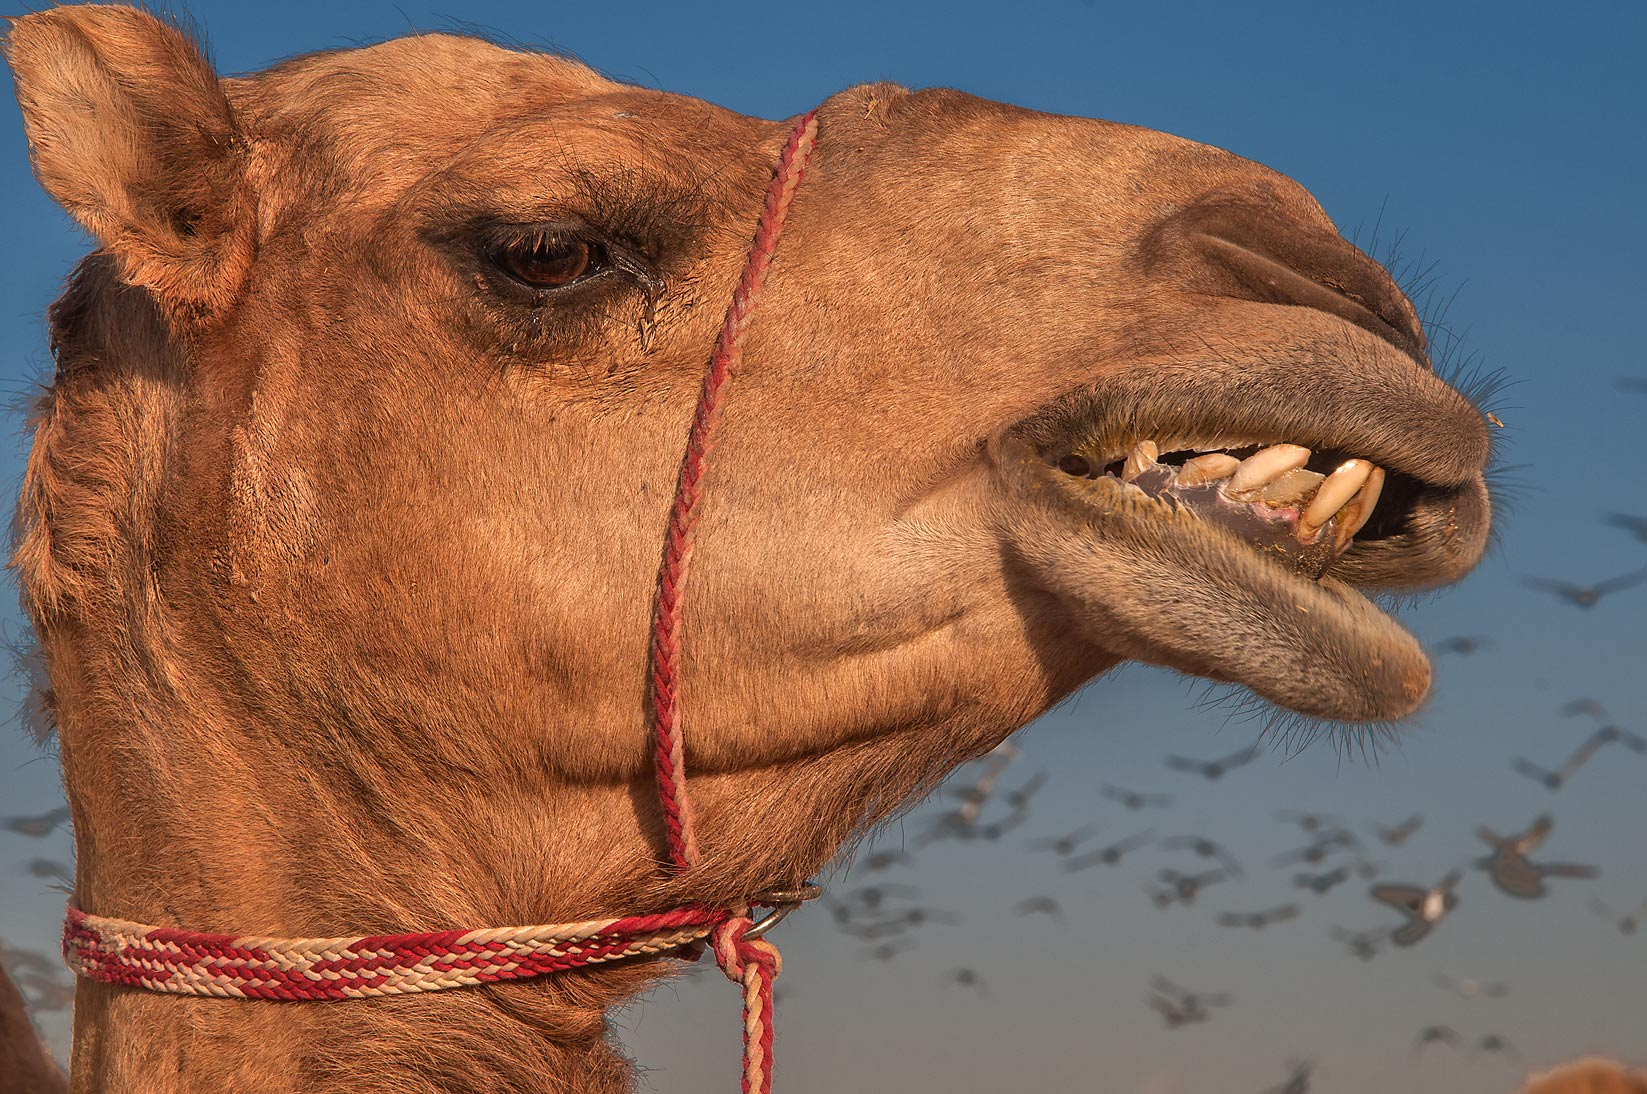 Camel showing its teeth in livestock market, Abu Hamour area. Doha, Qatar